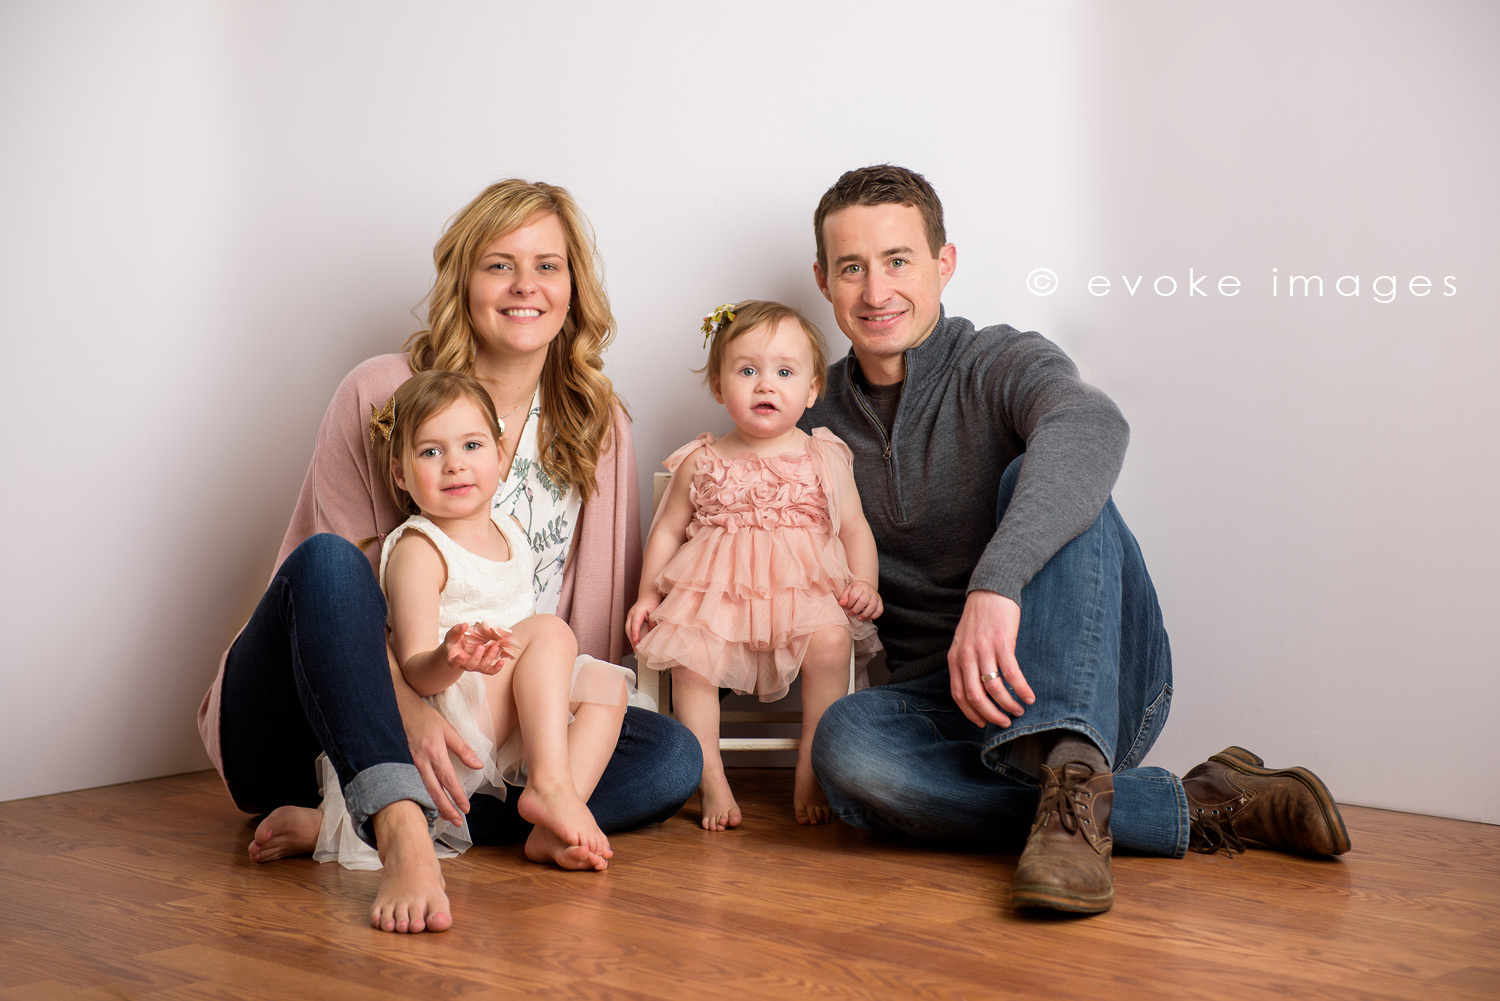 anchorage Alaska studio family portrait